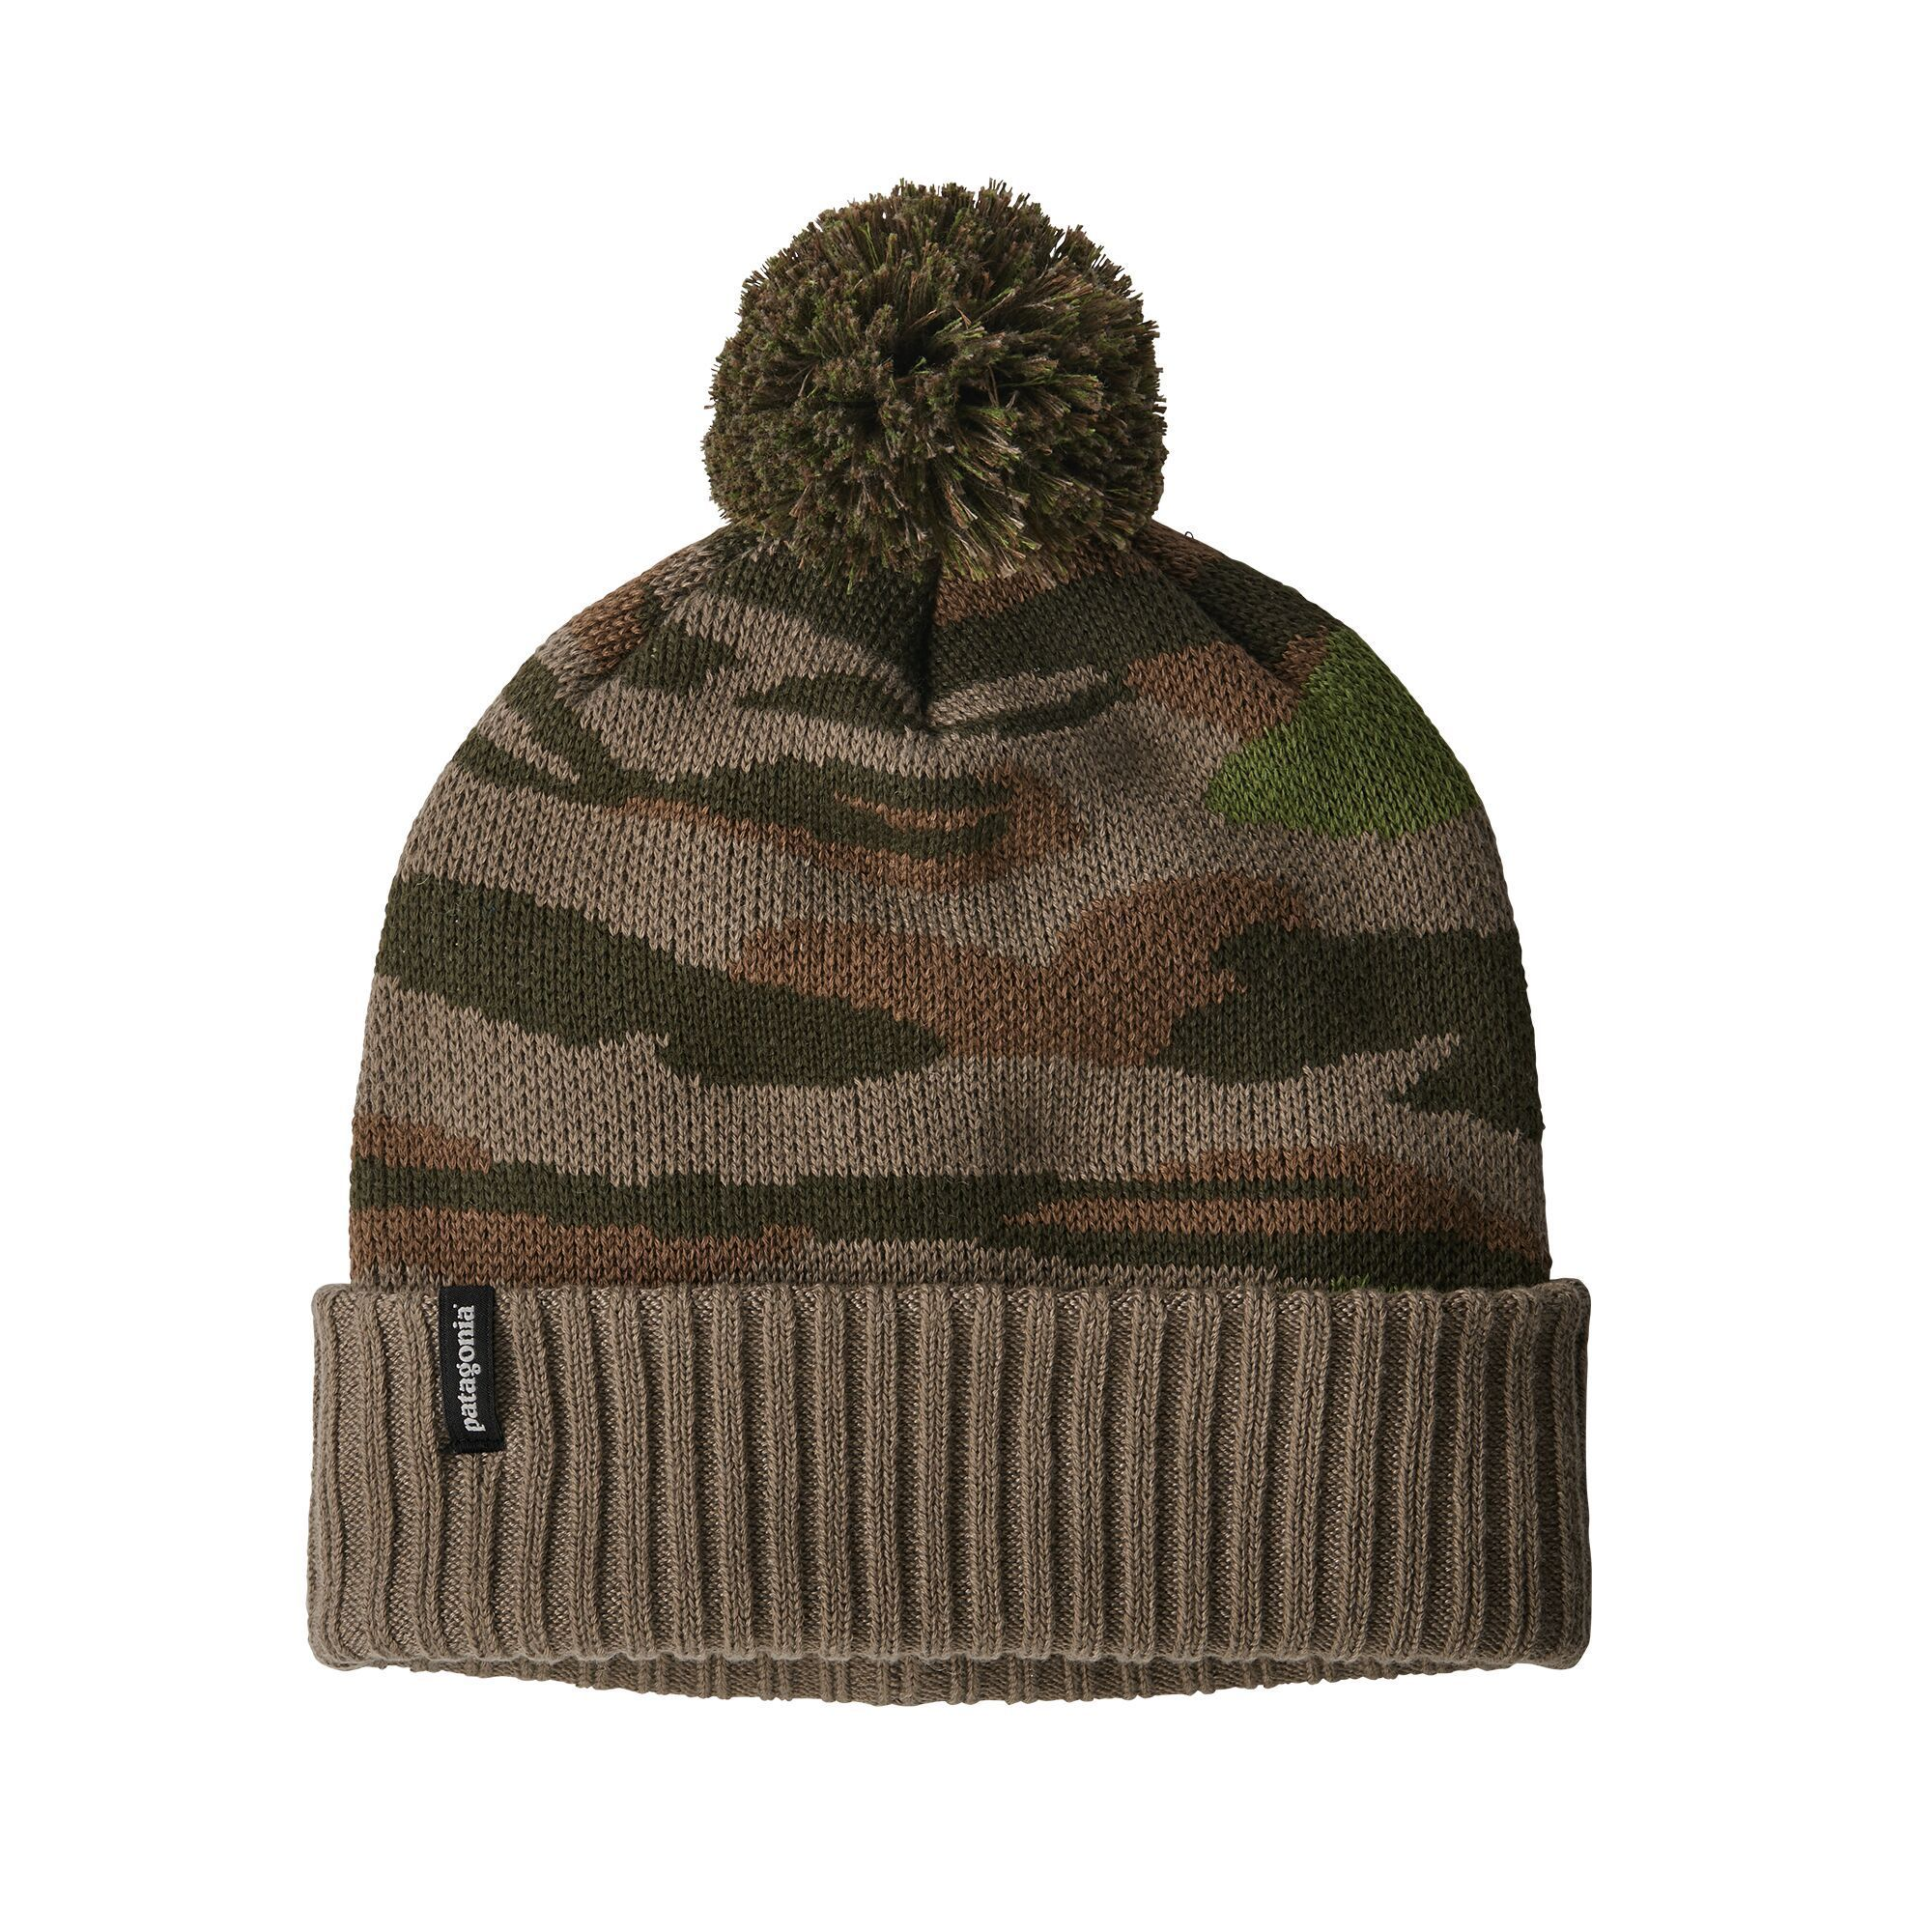 Patagonia - Powder Town Beanie -100% Recycled Polyester - Weekendbee - sustainable sportswear